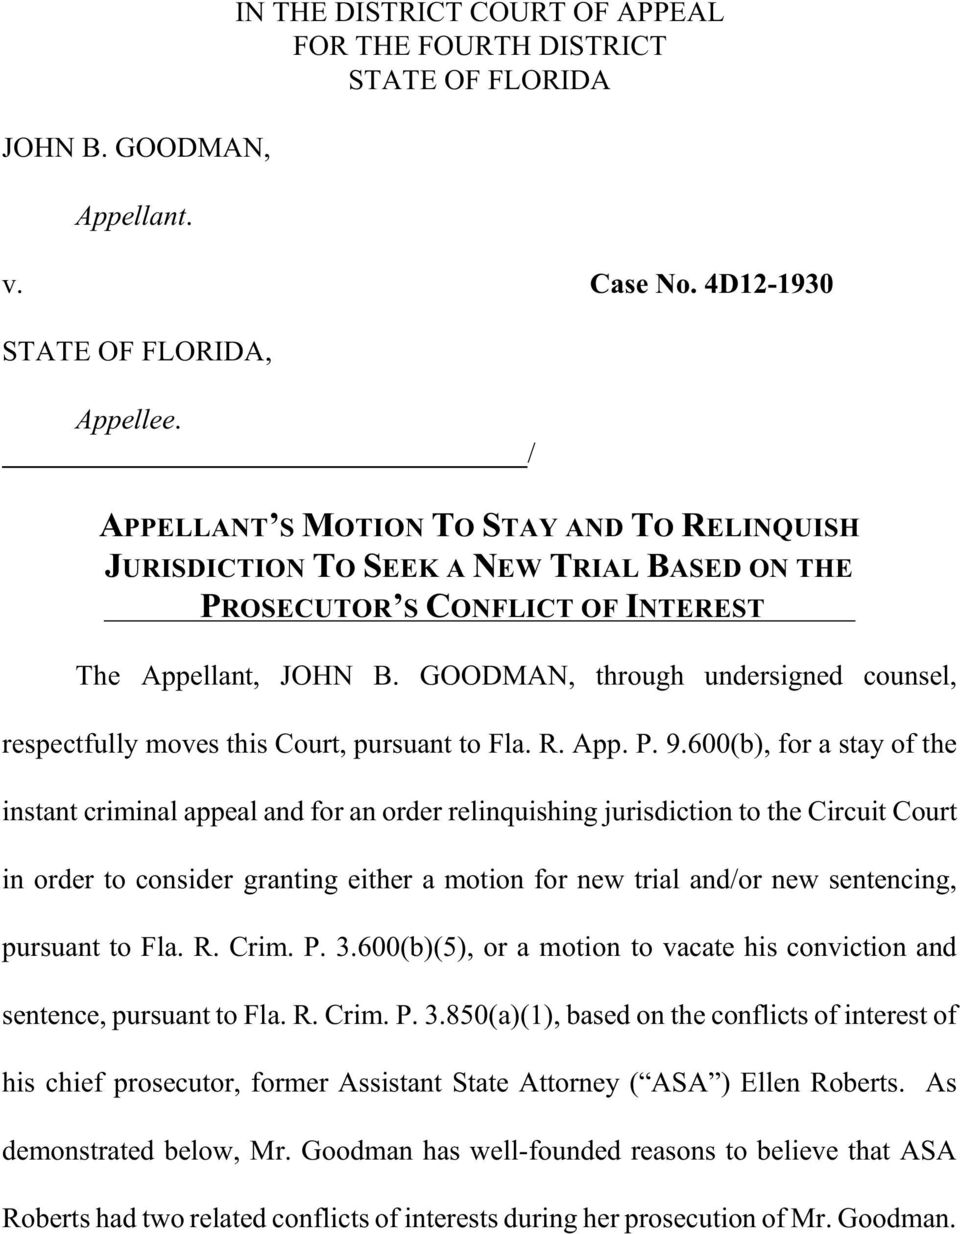 GOODMAN, through undersigned counsel, respectfully moves this Court, pursuant to Fla. R. App. P. 9.